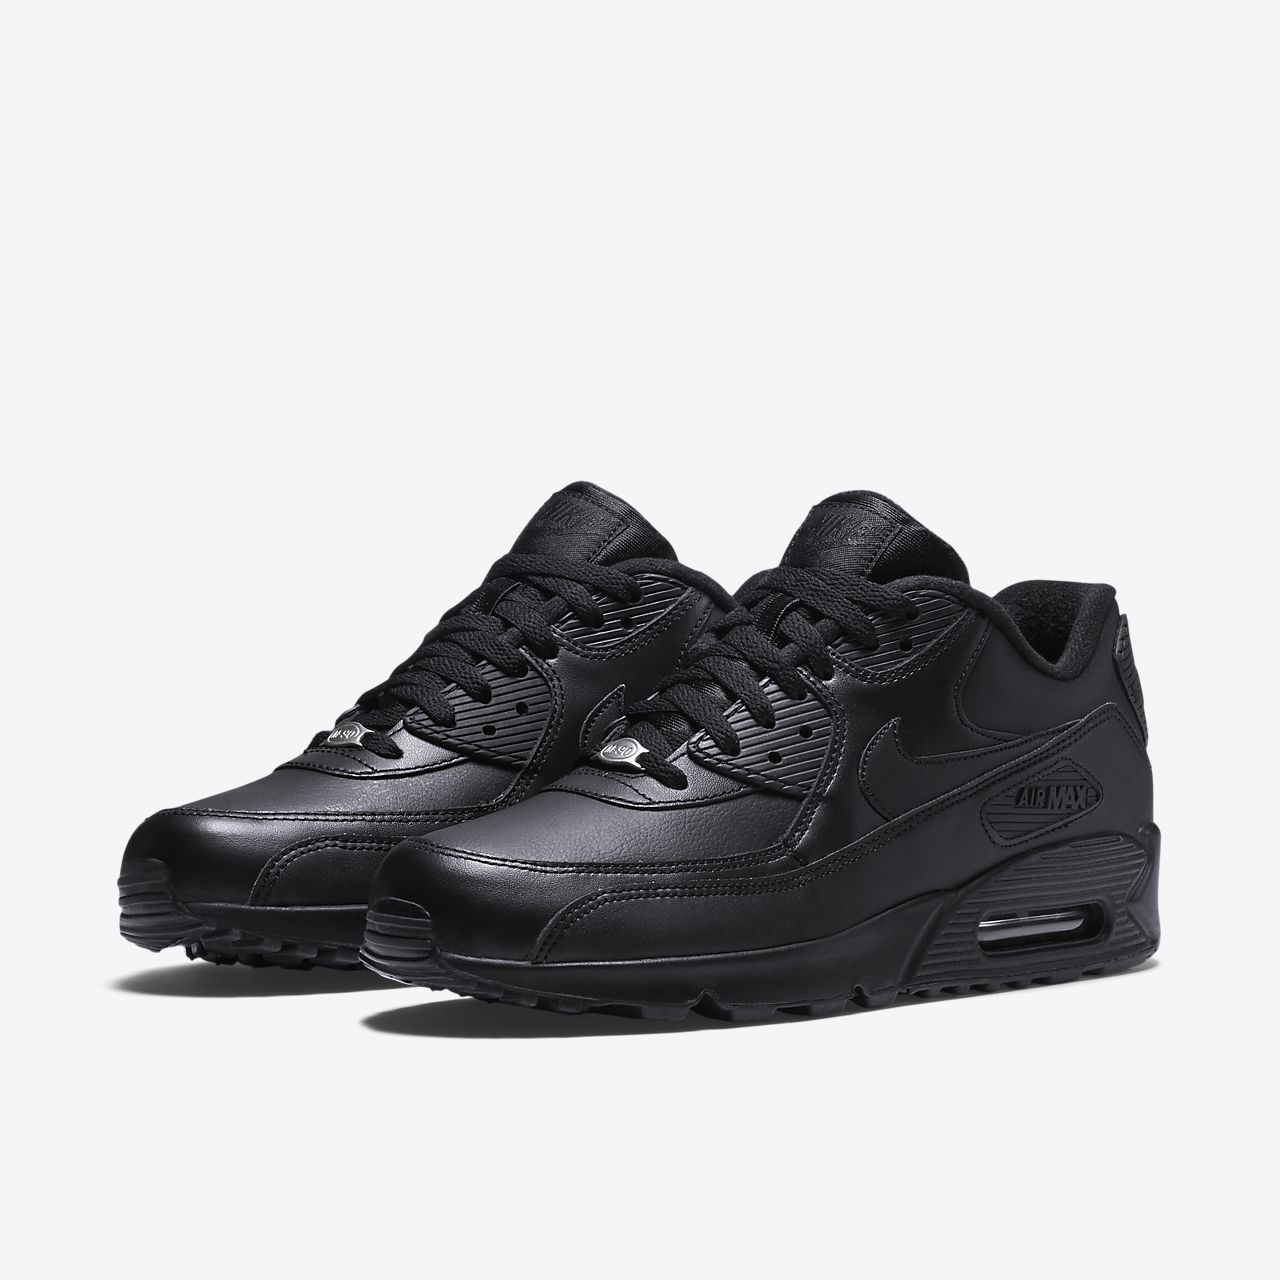 herrenschuhe nike air max 90